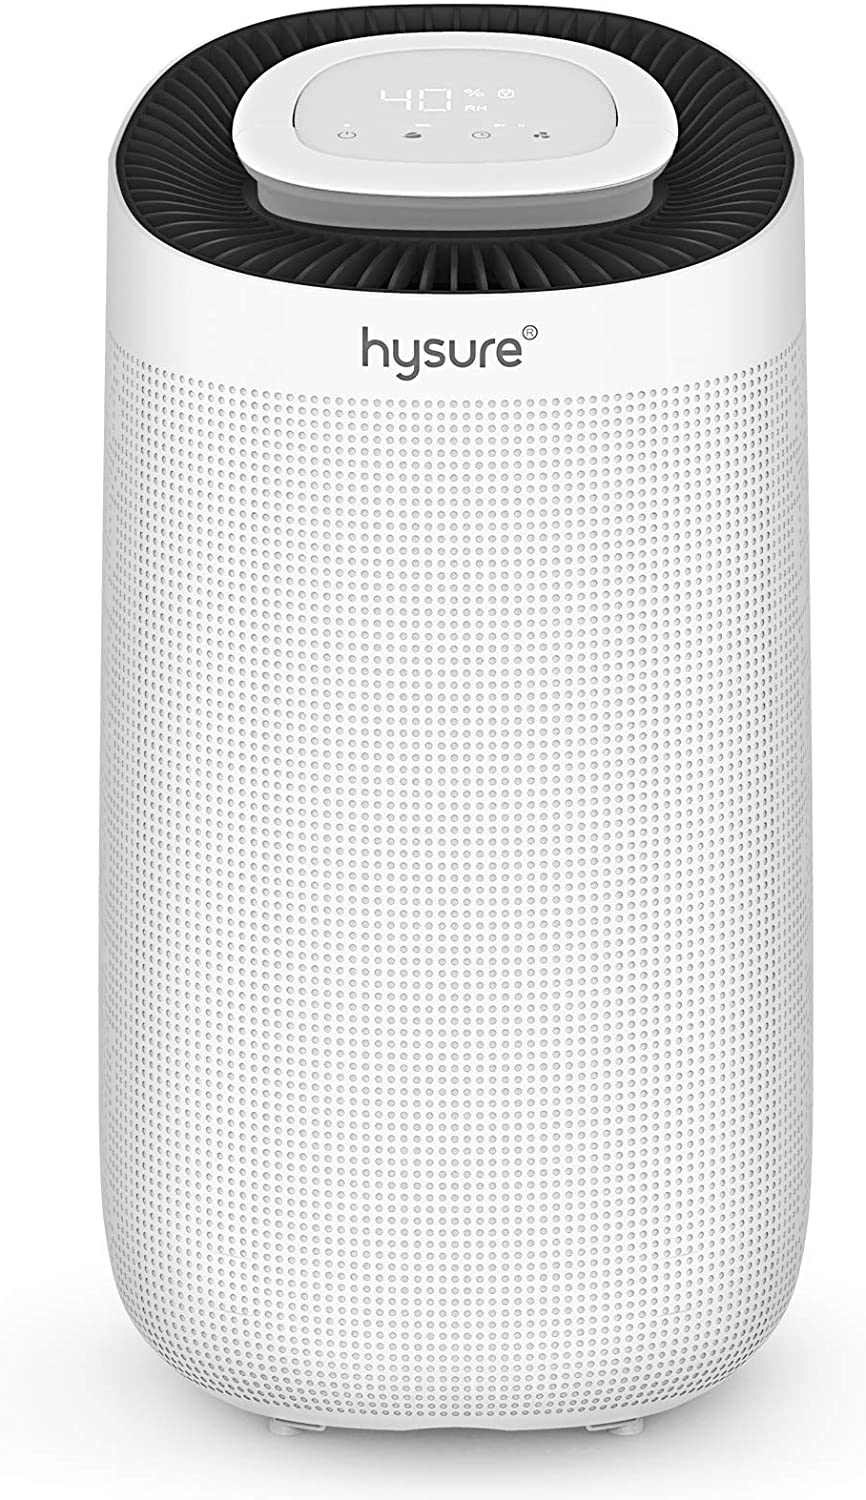 Hysure 20 New products, world's highest quality popular! Pint Dehumidifier for Basements Now free shipping 1 Sq. Ft Dehumidi 500